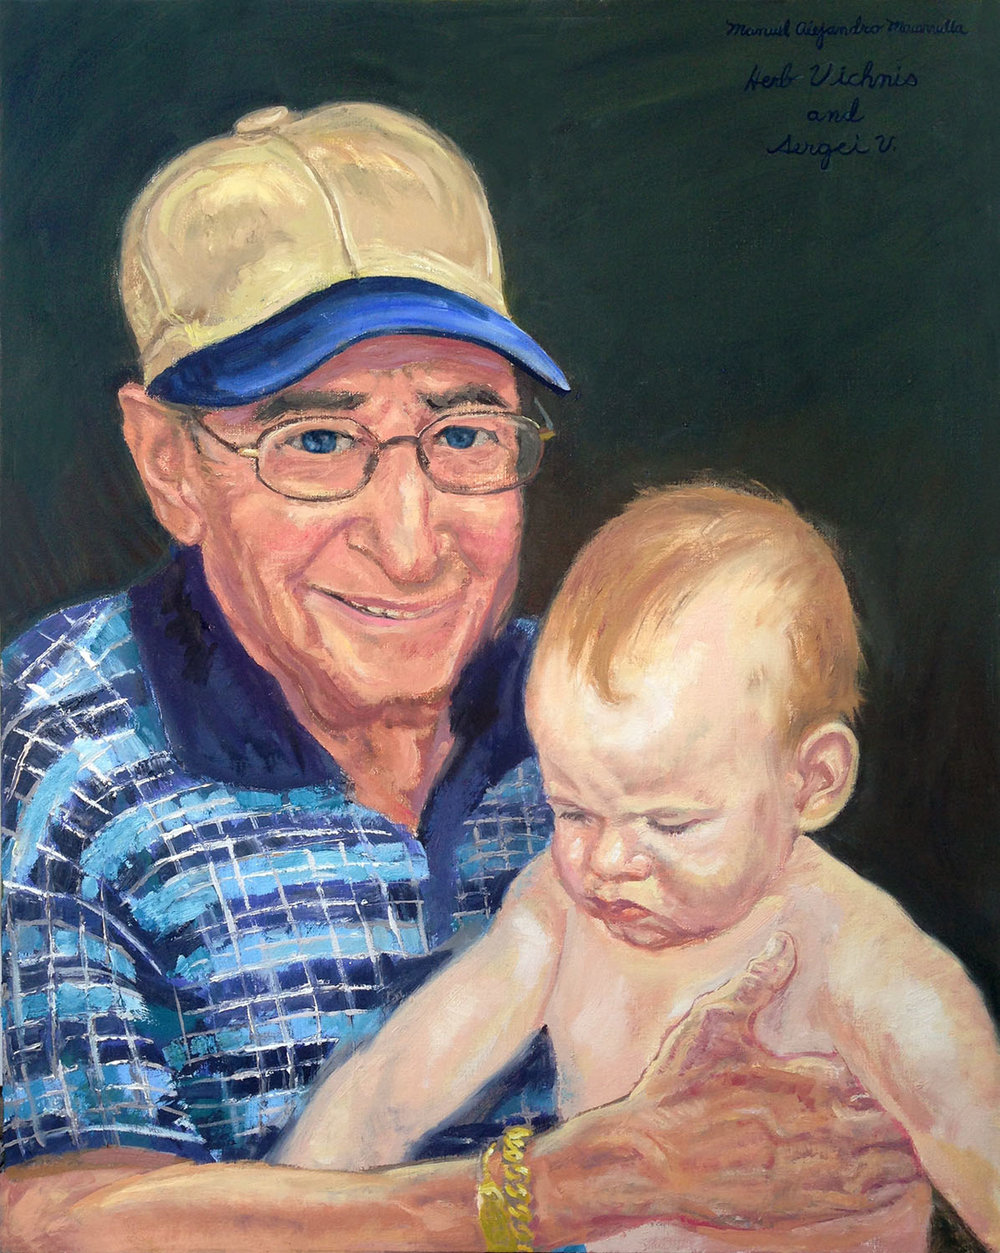 "Herb Vichnis and Sergei V.,  2017 Oil on canvas, 30"" X 24"" Private collection"